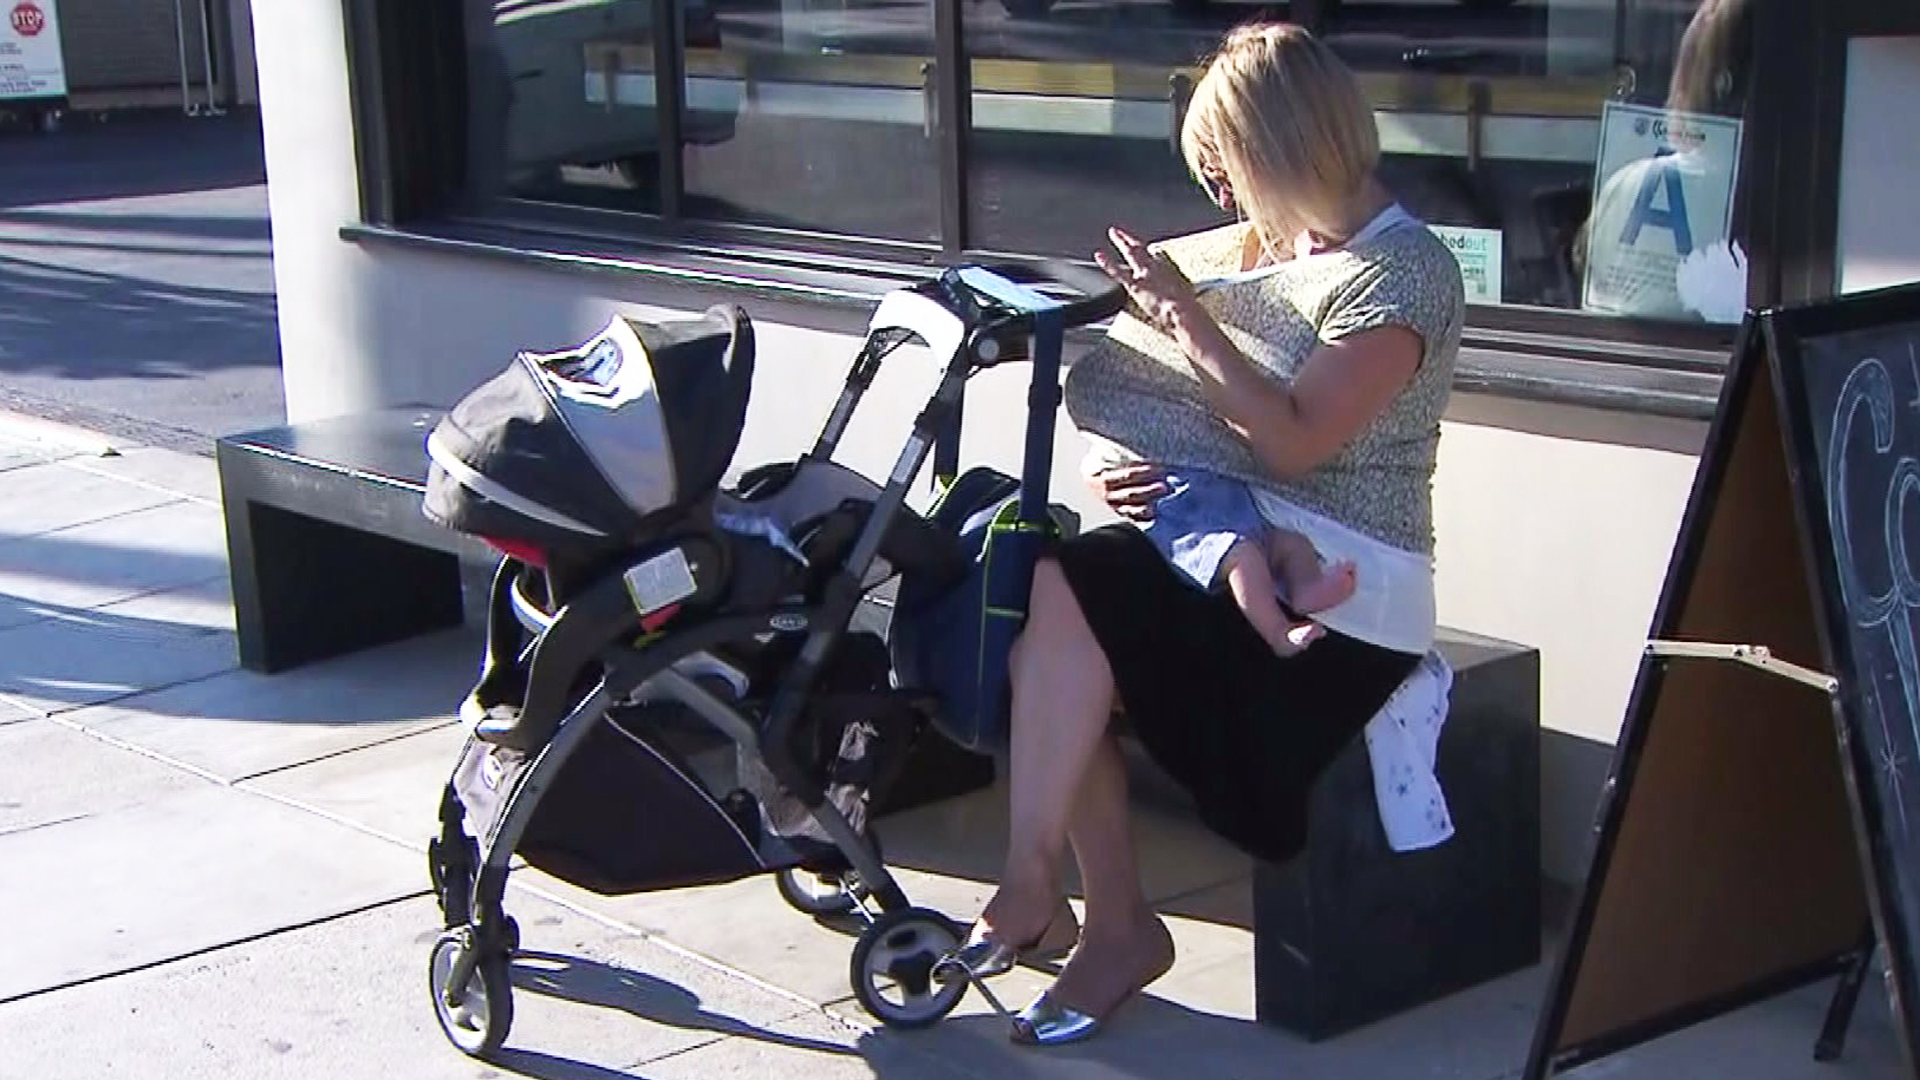 Ingrid Wiese-Hesson says she was nursing her baby in the back of the Beverly Hills Anthropologie store when she was escorted to the restroom. (Credit: KTLA)